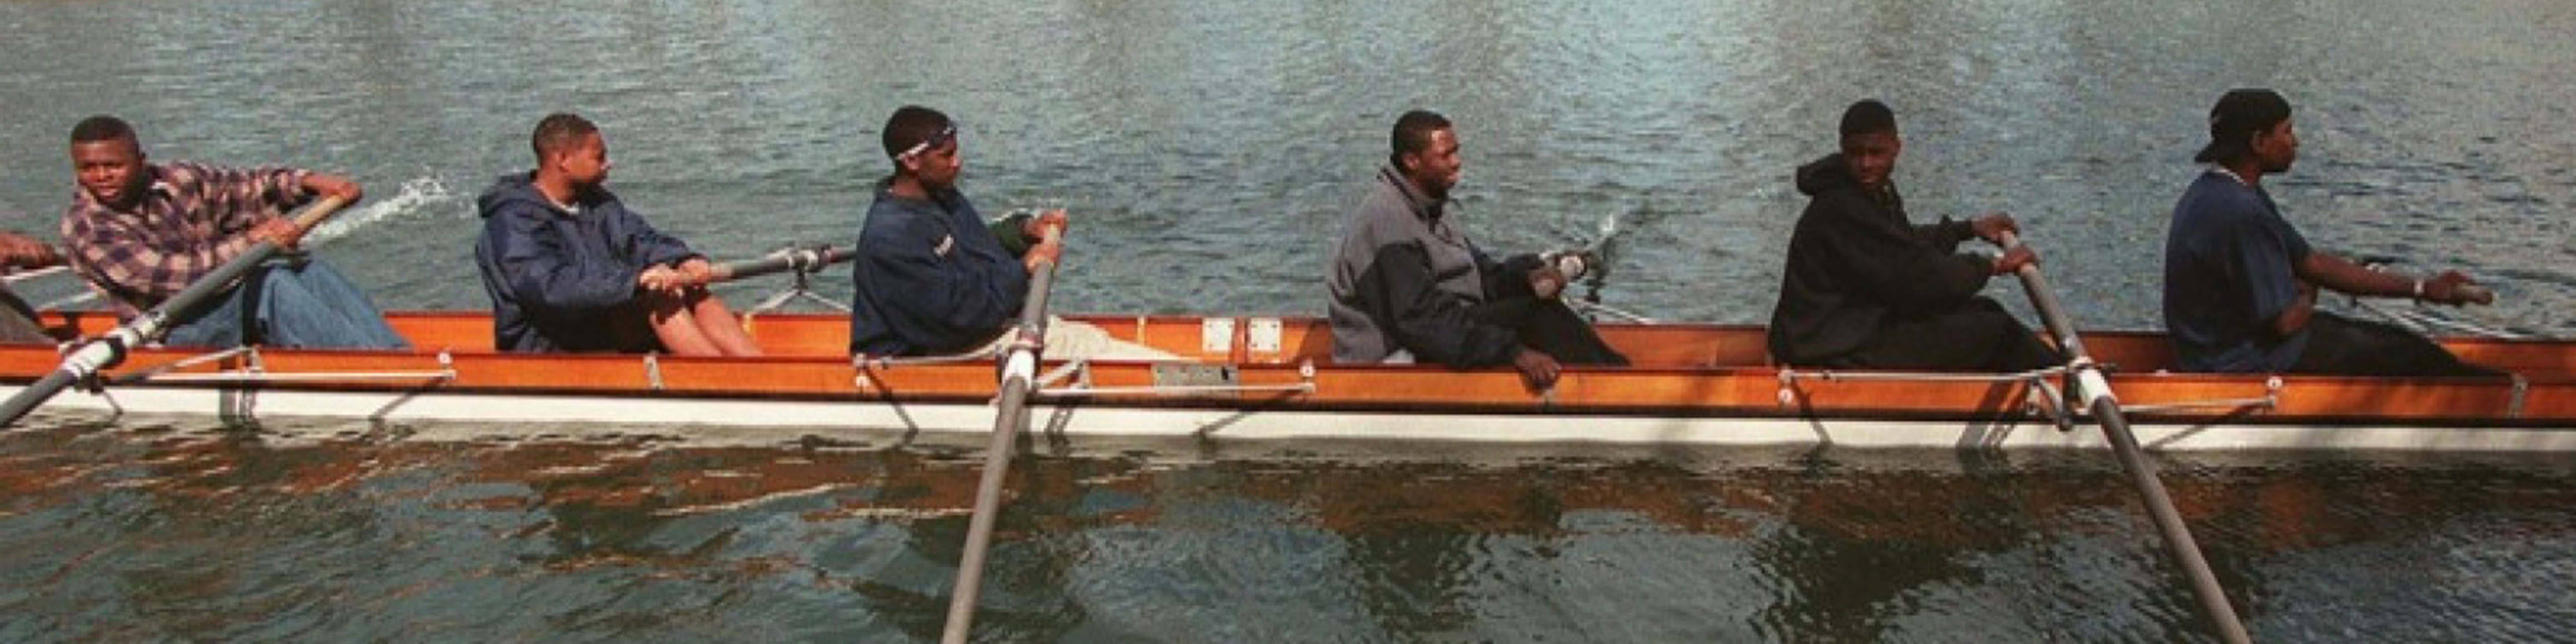 a team of young black men rowing crew